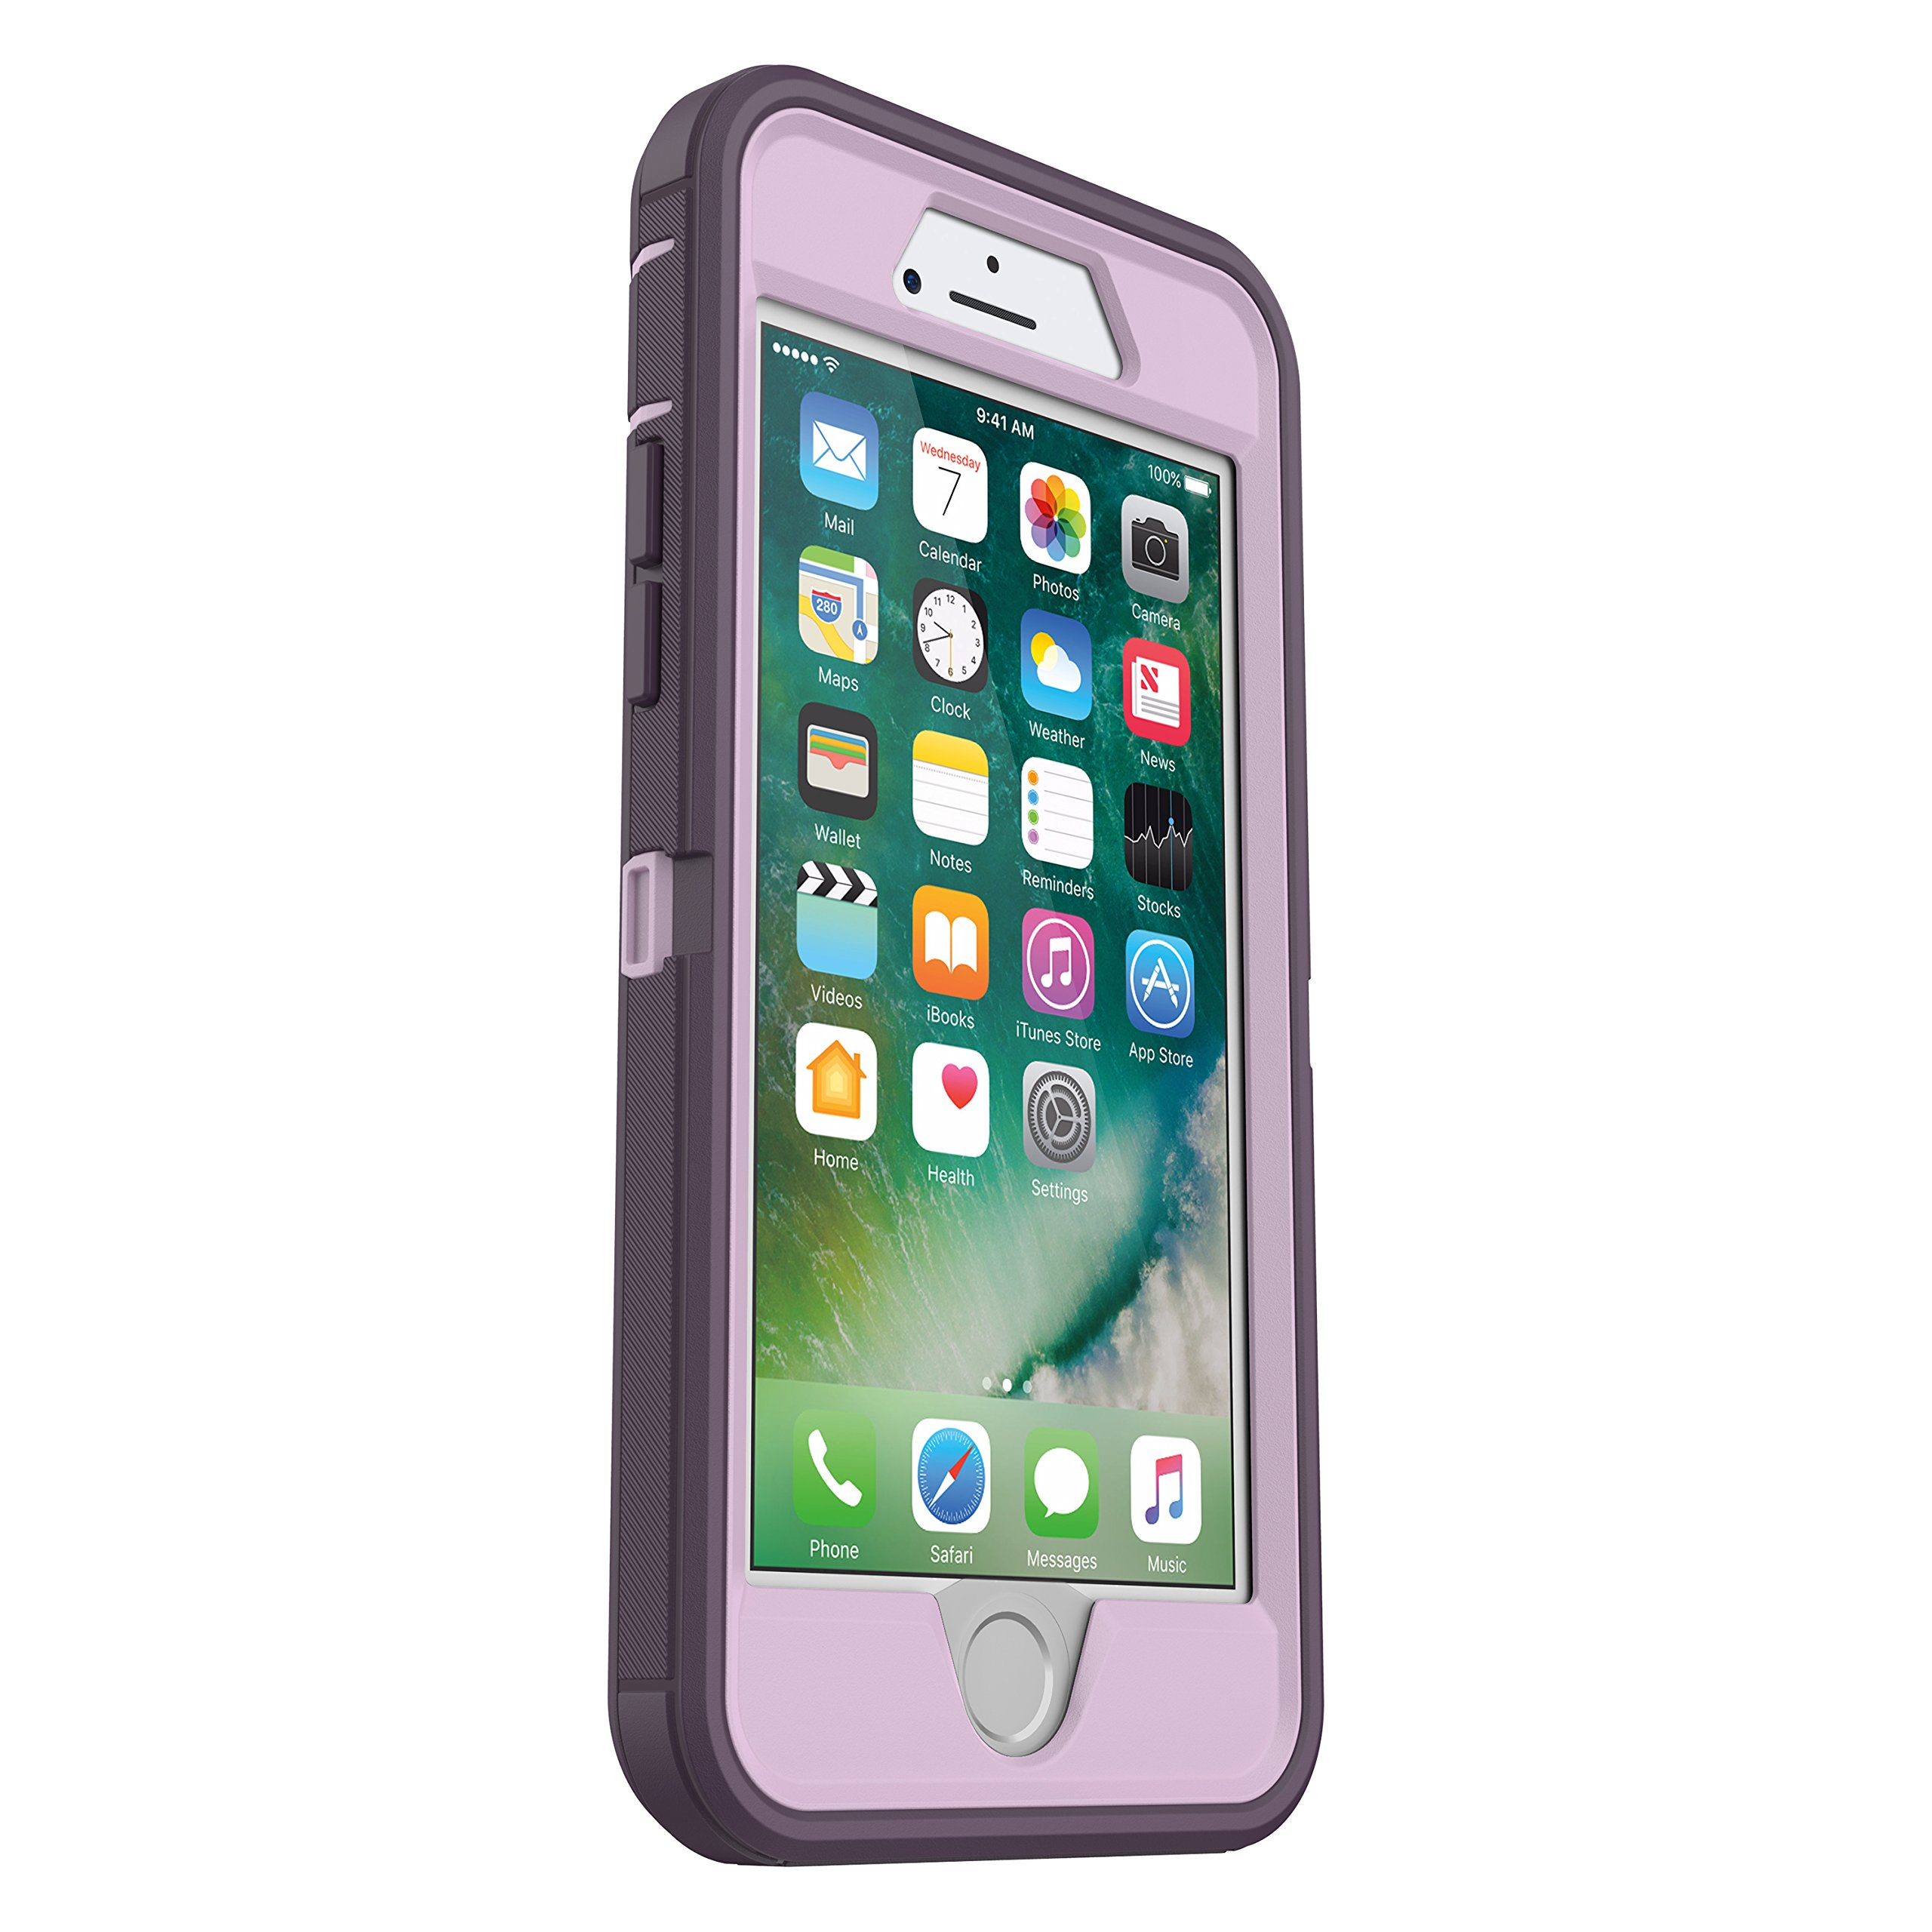 OtterBox DEFENDER SERIES Case for iPhone 8 & iPhone 7 (NOT Plus) - Frustration Free Packaging - PURPLE NEBULA (WINSOME ORCHID/NIGHT PURPLE) by OtterBox (Image #3)